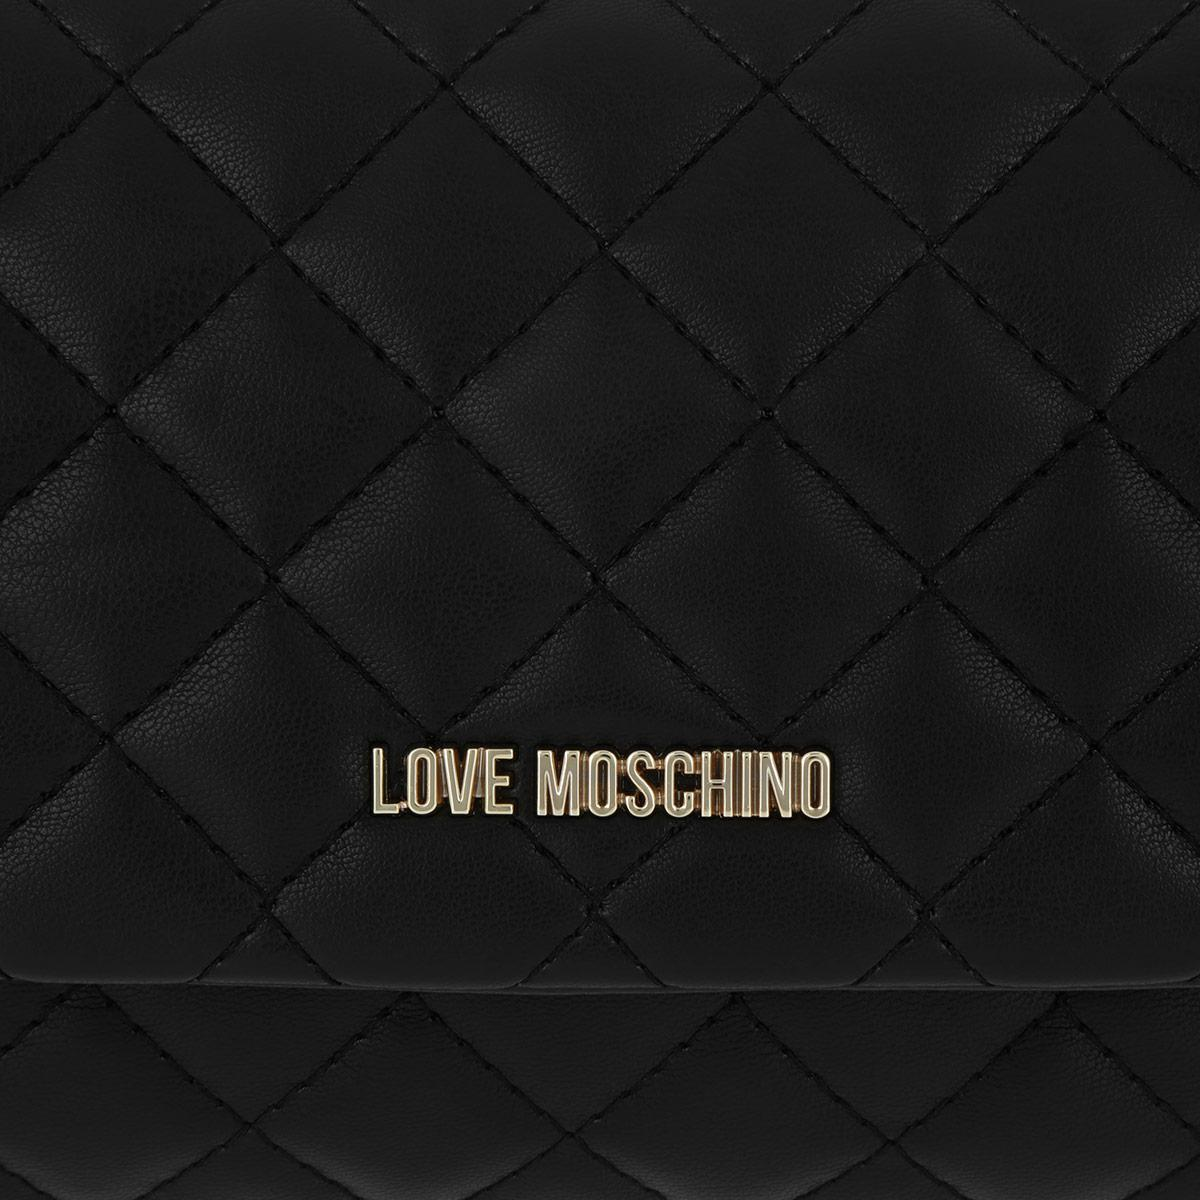 Love Moschino Synthetic Quilted Crossbody Bag Nero in Black